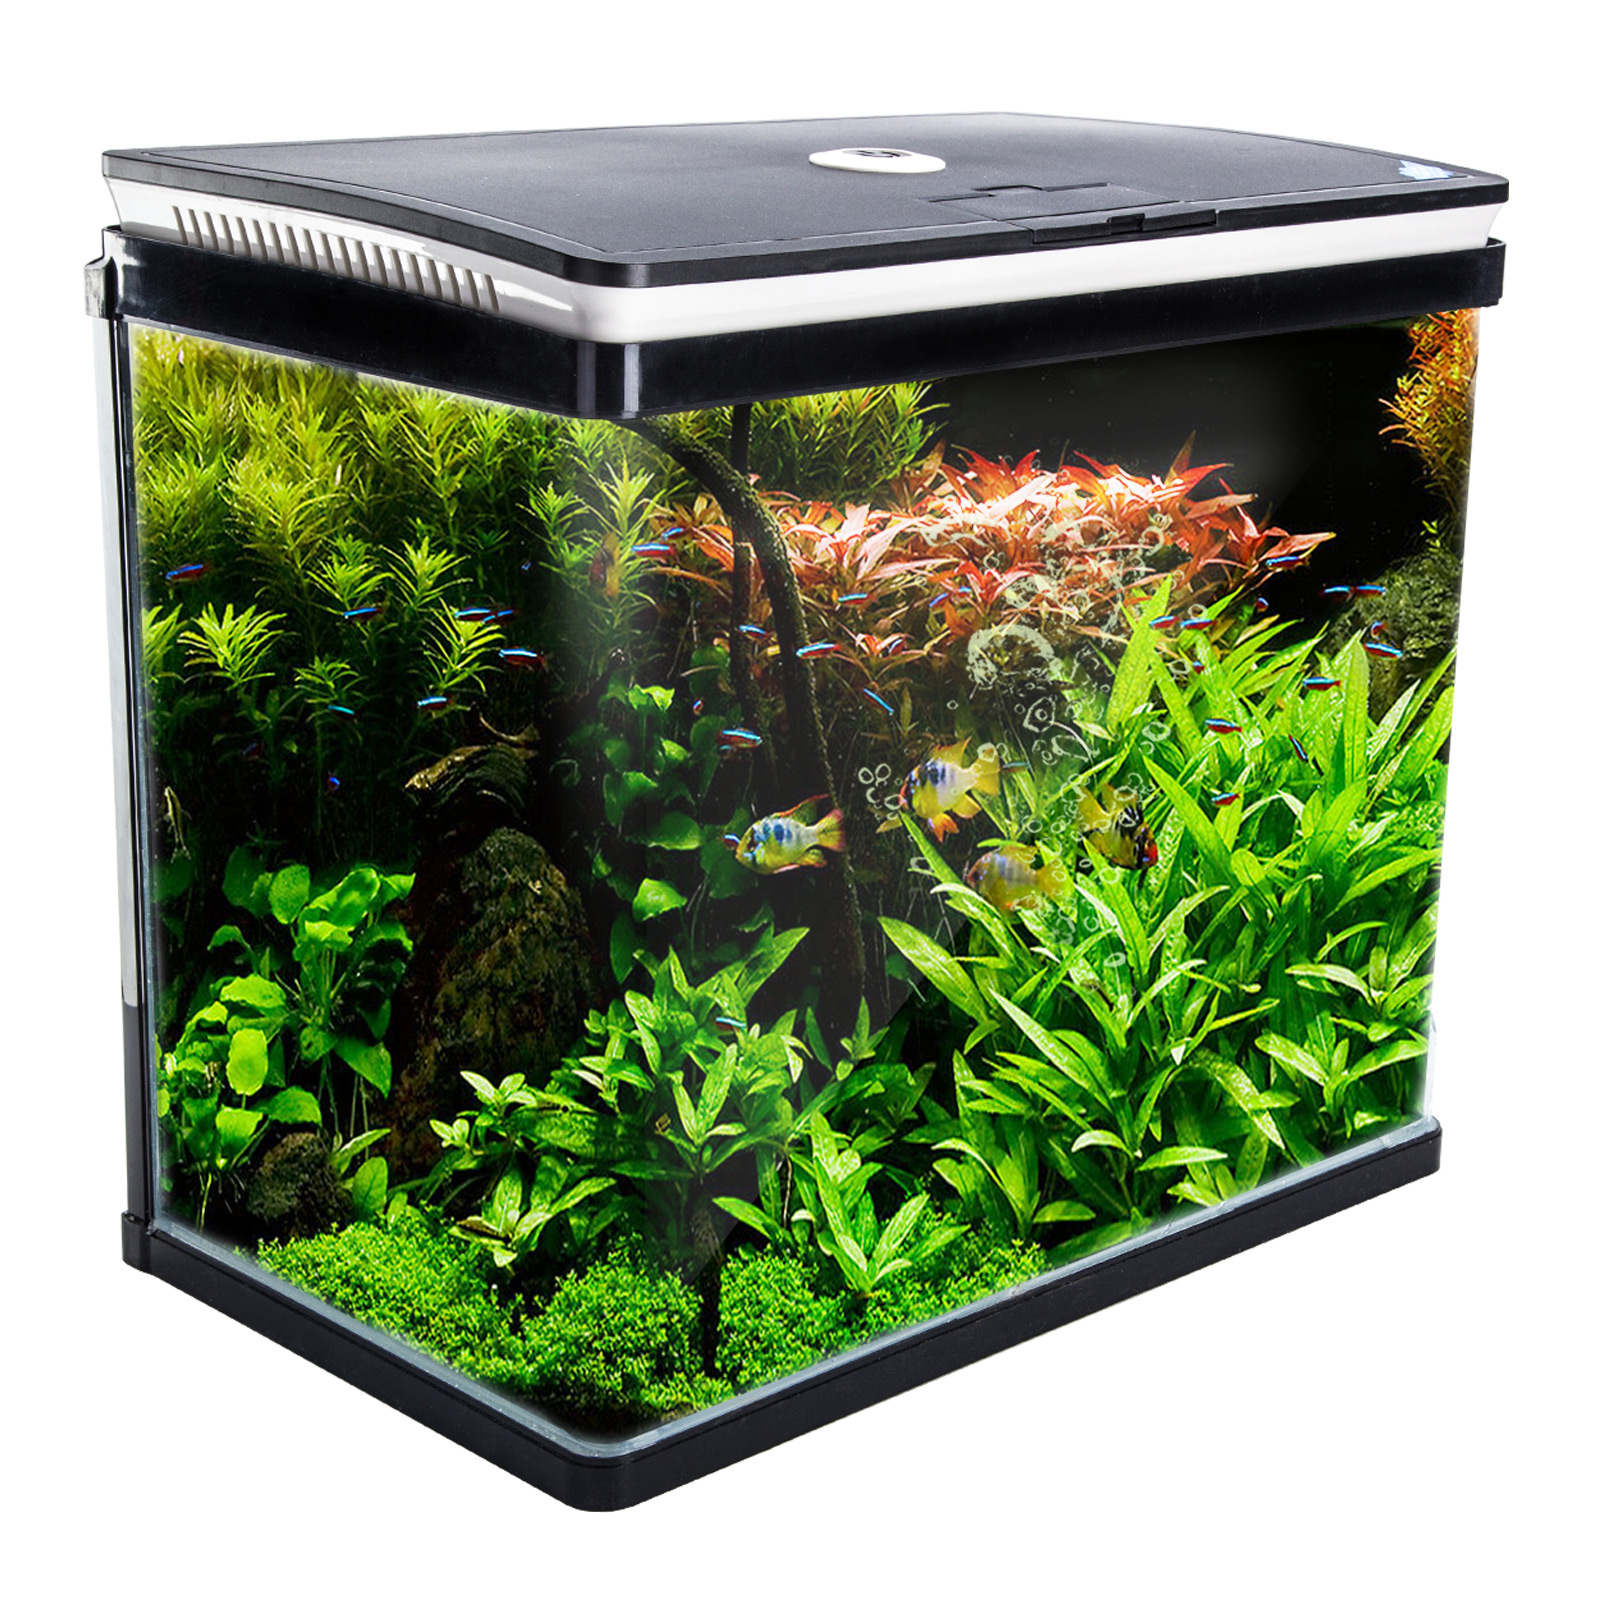 Aquarium Curved Glass RGB LED Fish Tank 52L